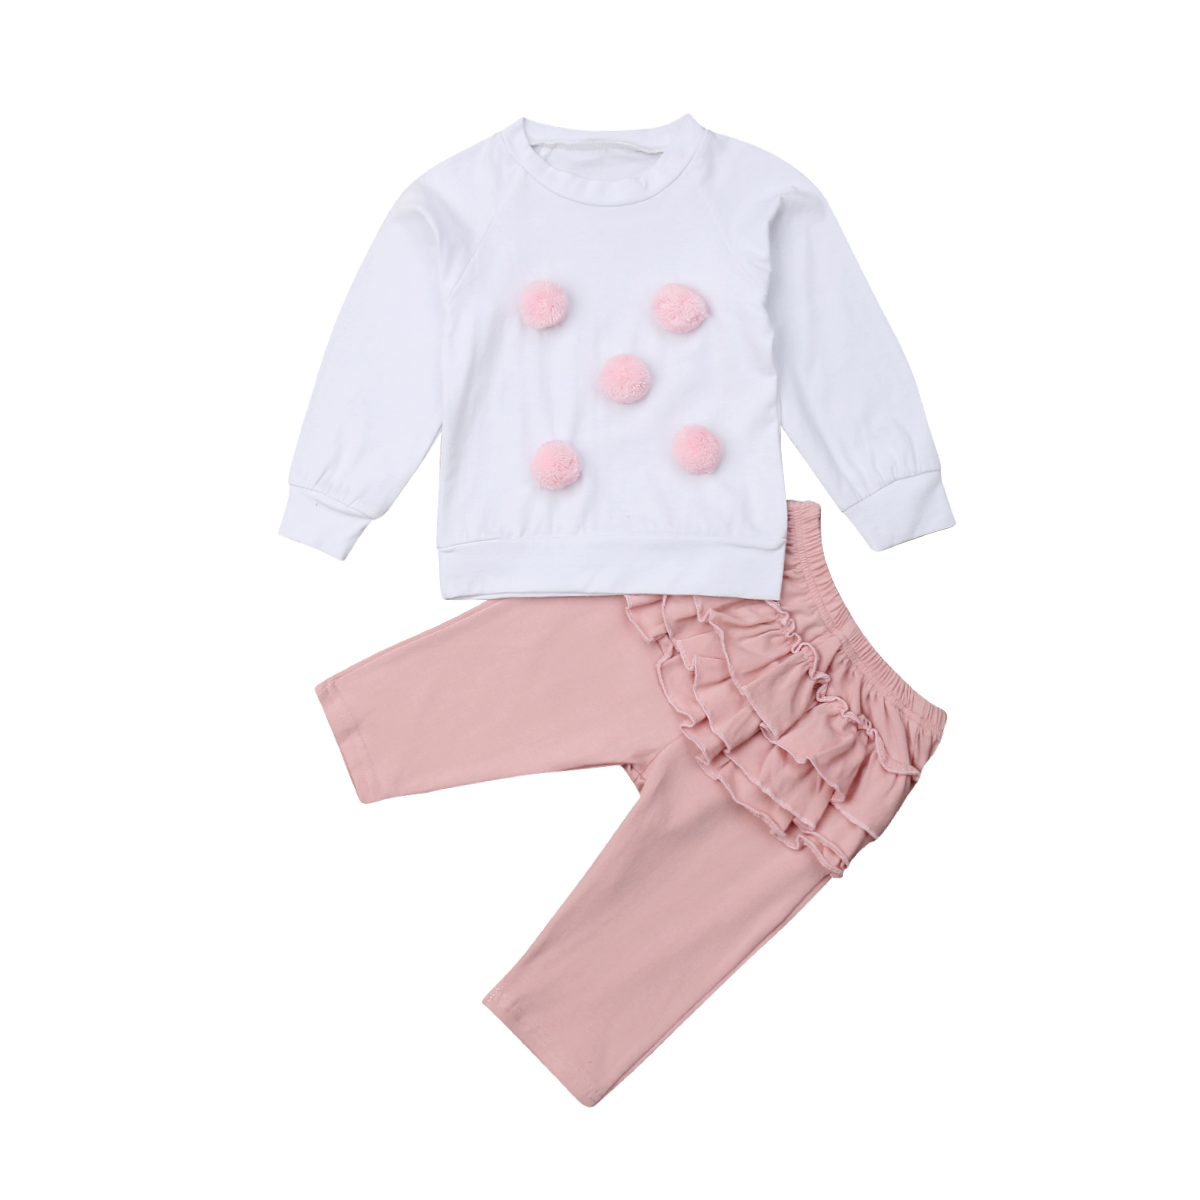 Newborn Baby Girls Winter Warm Outfits Clothes Set Fur Ball Tops Ruffle Pants 2Pcs Set Cotton Casual Clothing Outfits 0-24M